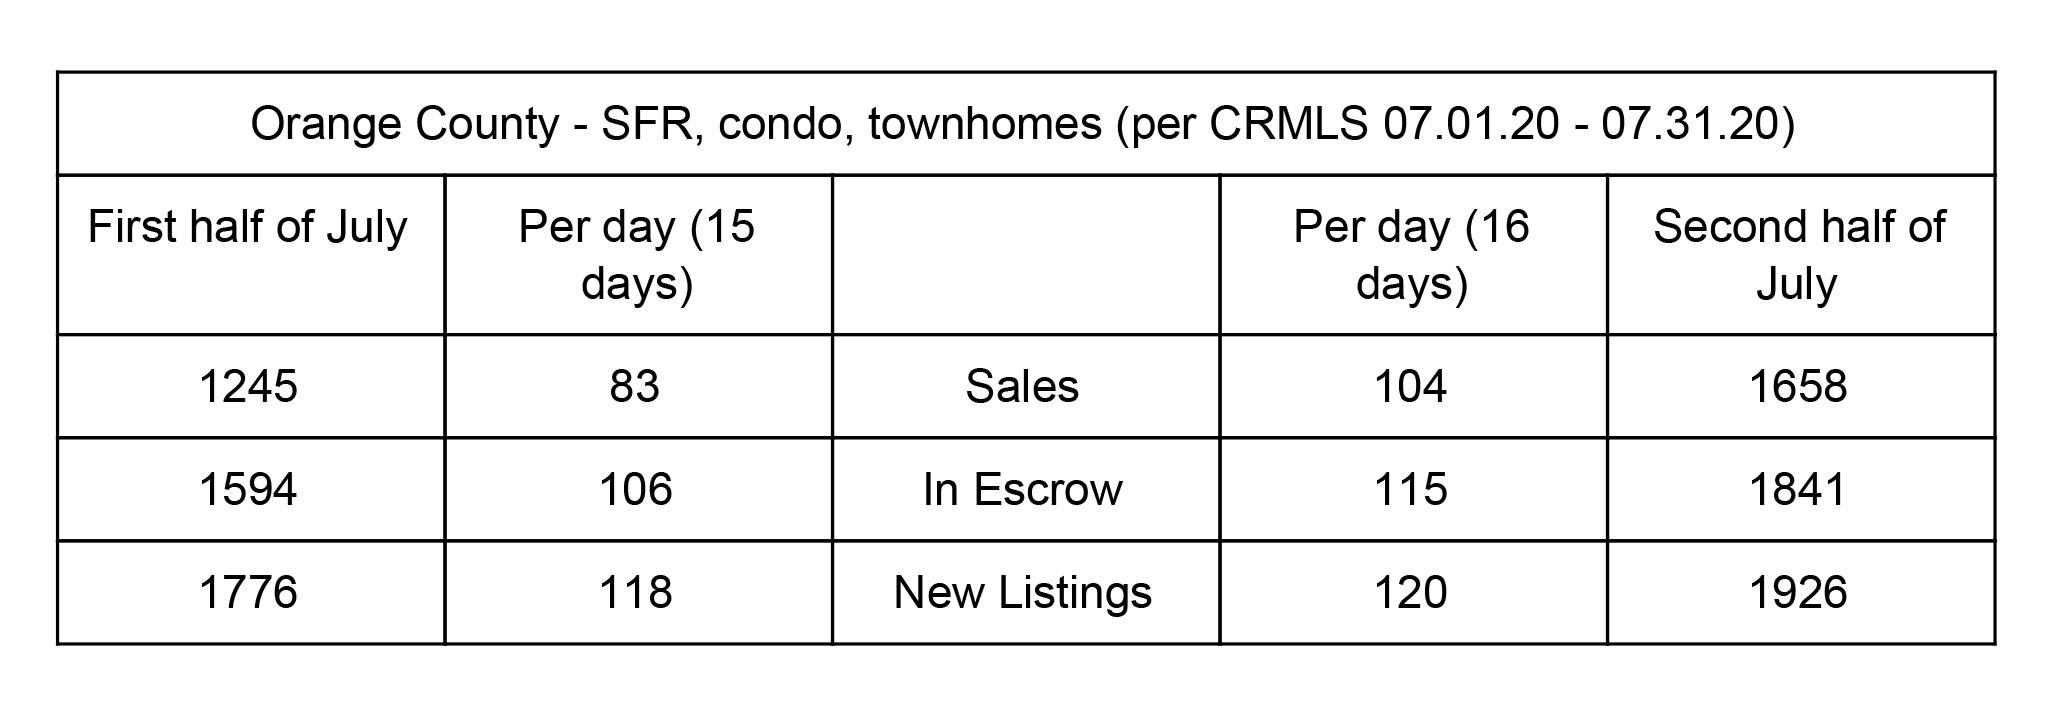 OC Housing Market Update - July 2020 - Month Split